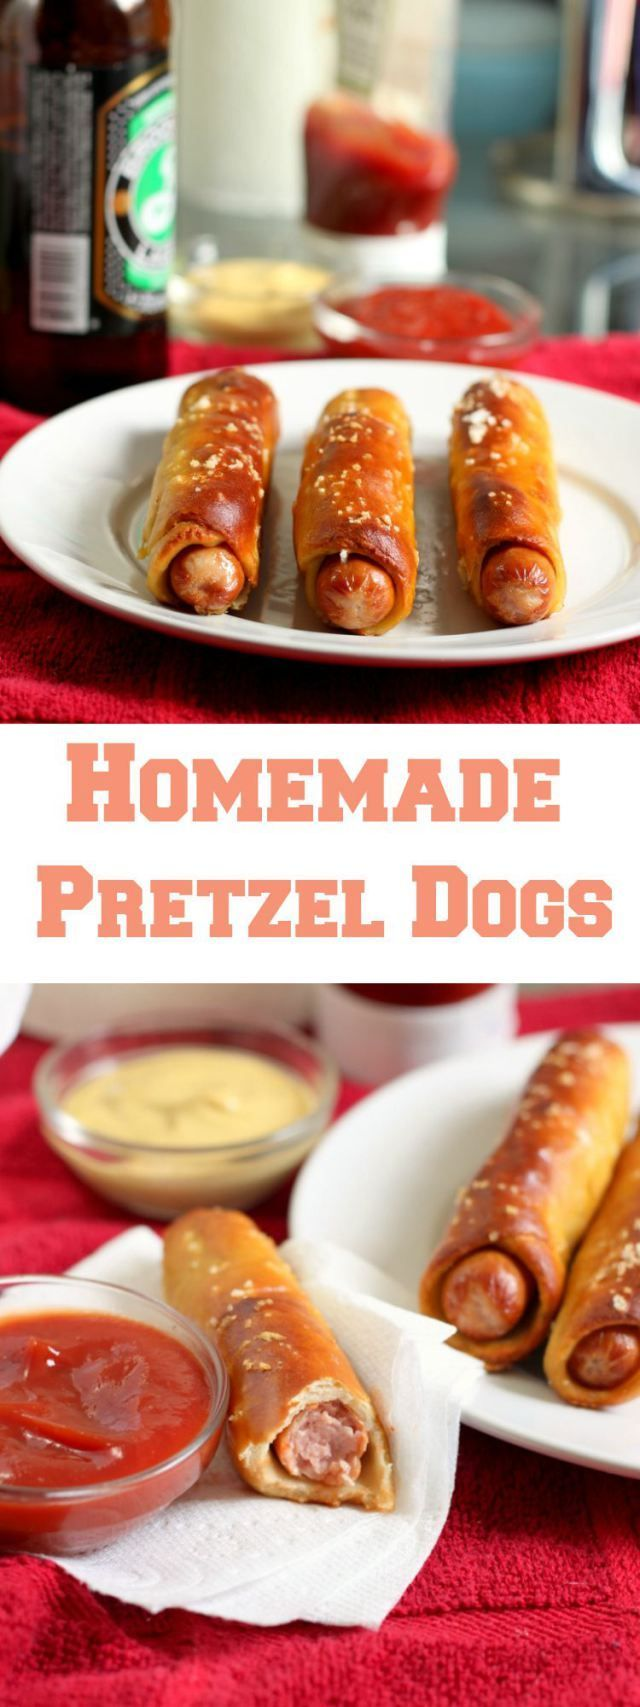 Pretzel Dogs - Bring the ballpark food to your home with this tasty recipe!